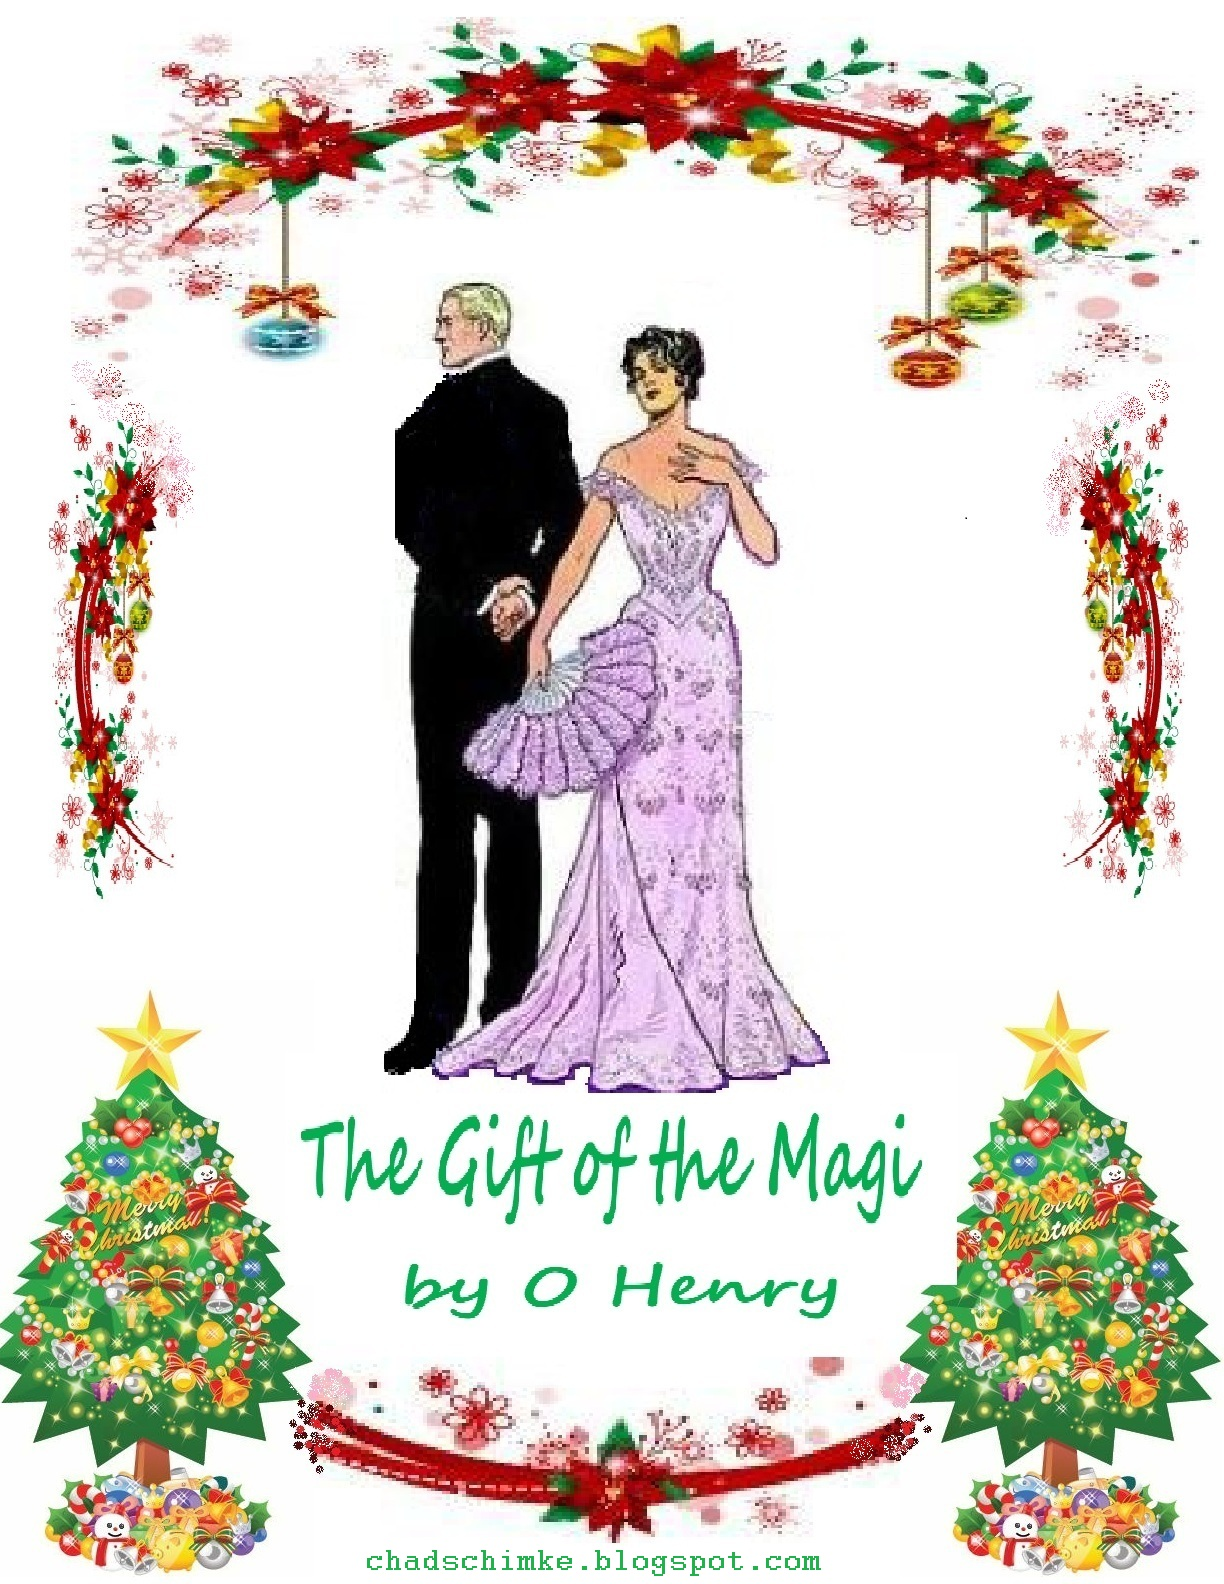 a review of o henrys famous short story the gift of the magi [the gift of the magi] is o henry's most famous short story put in quotation marks another strange thing that seemed quite normal at the time was the daily pomp.